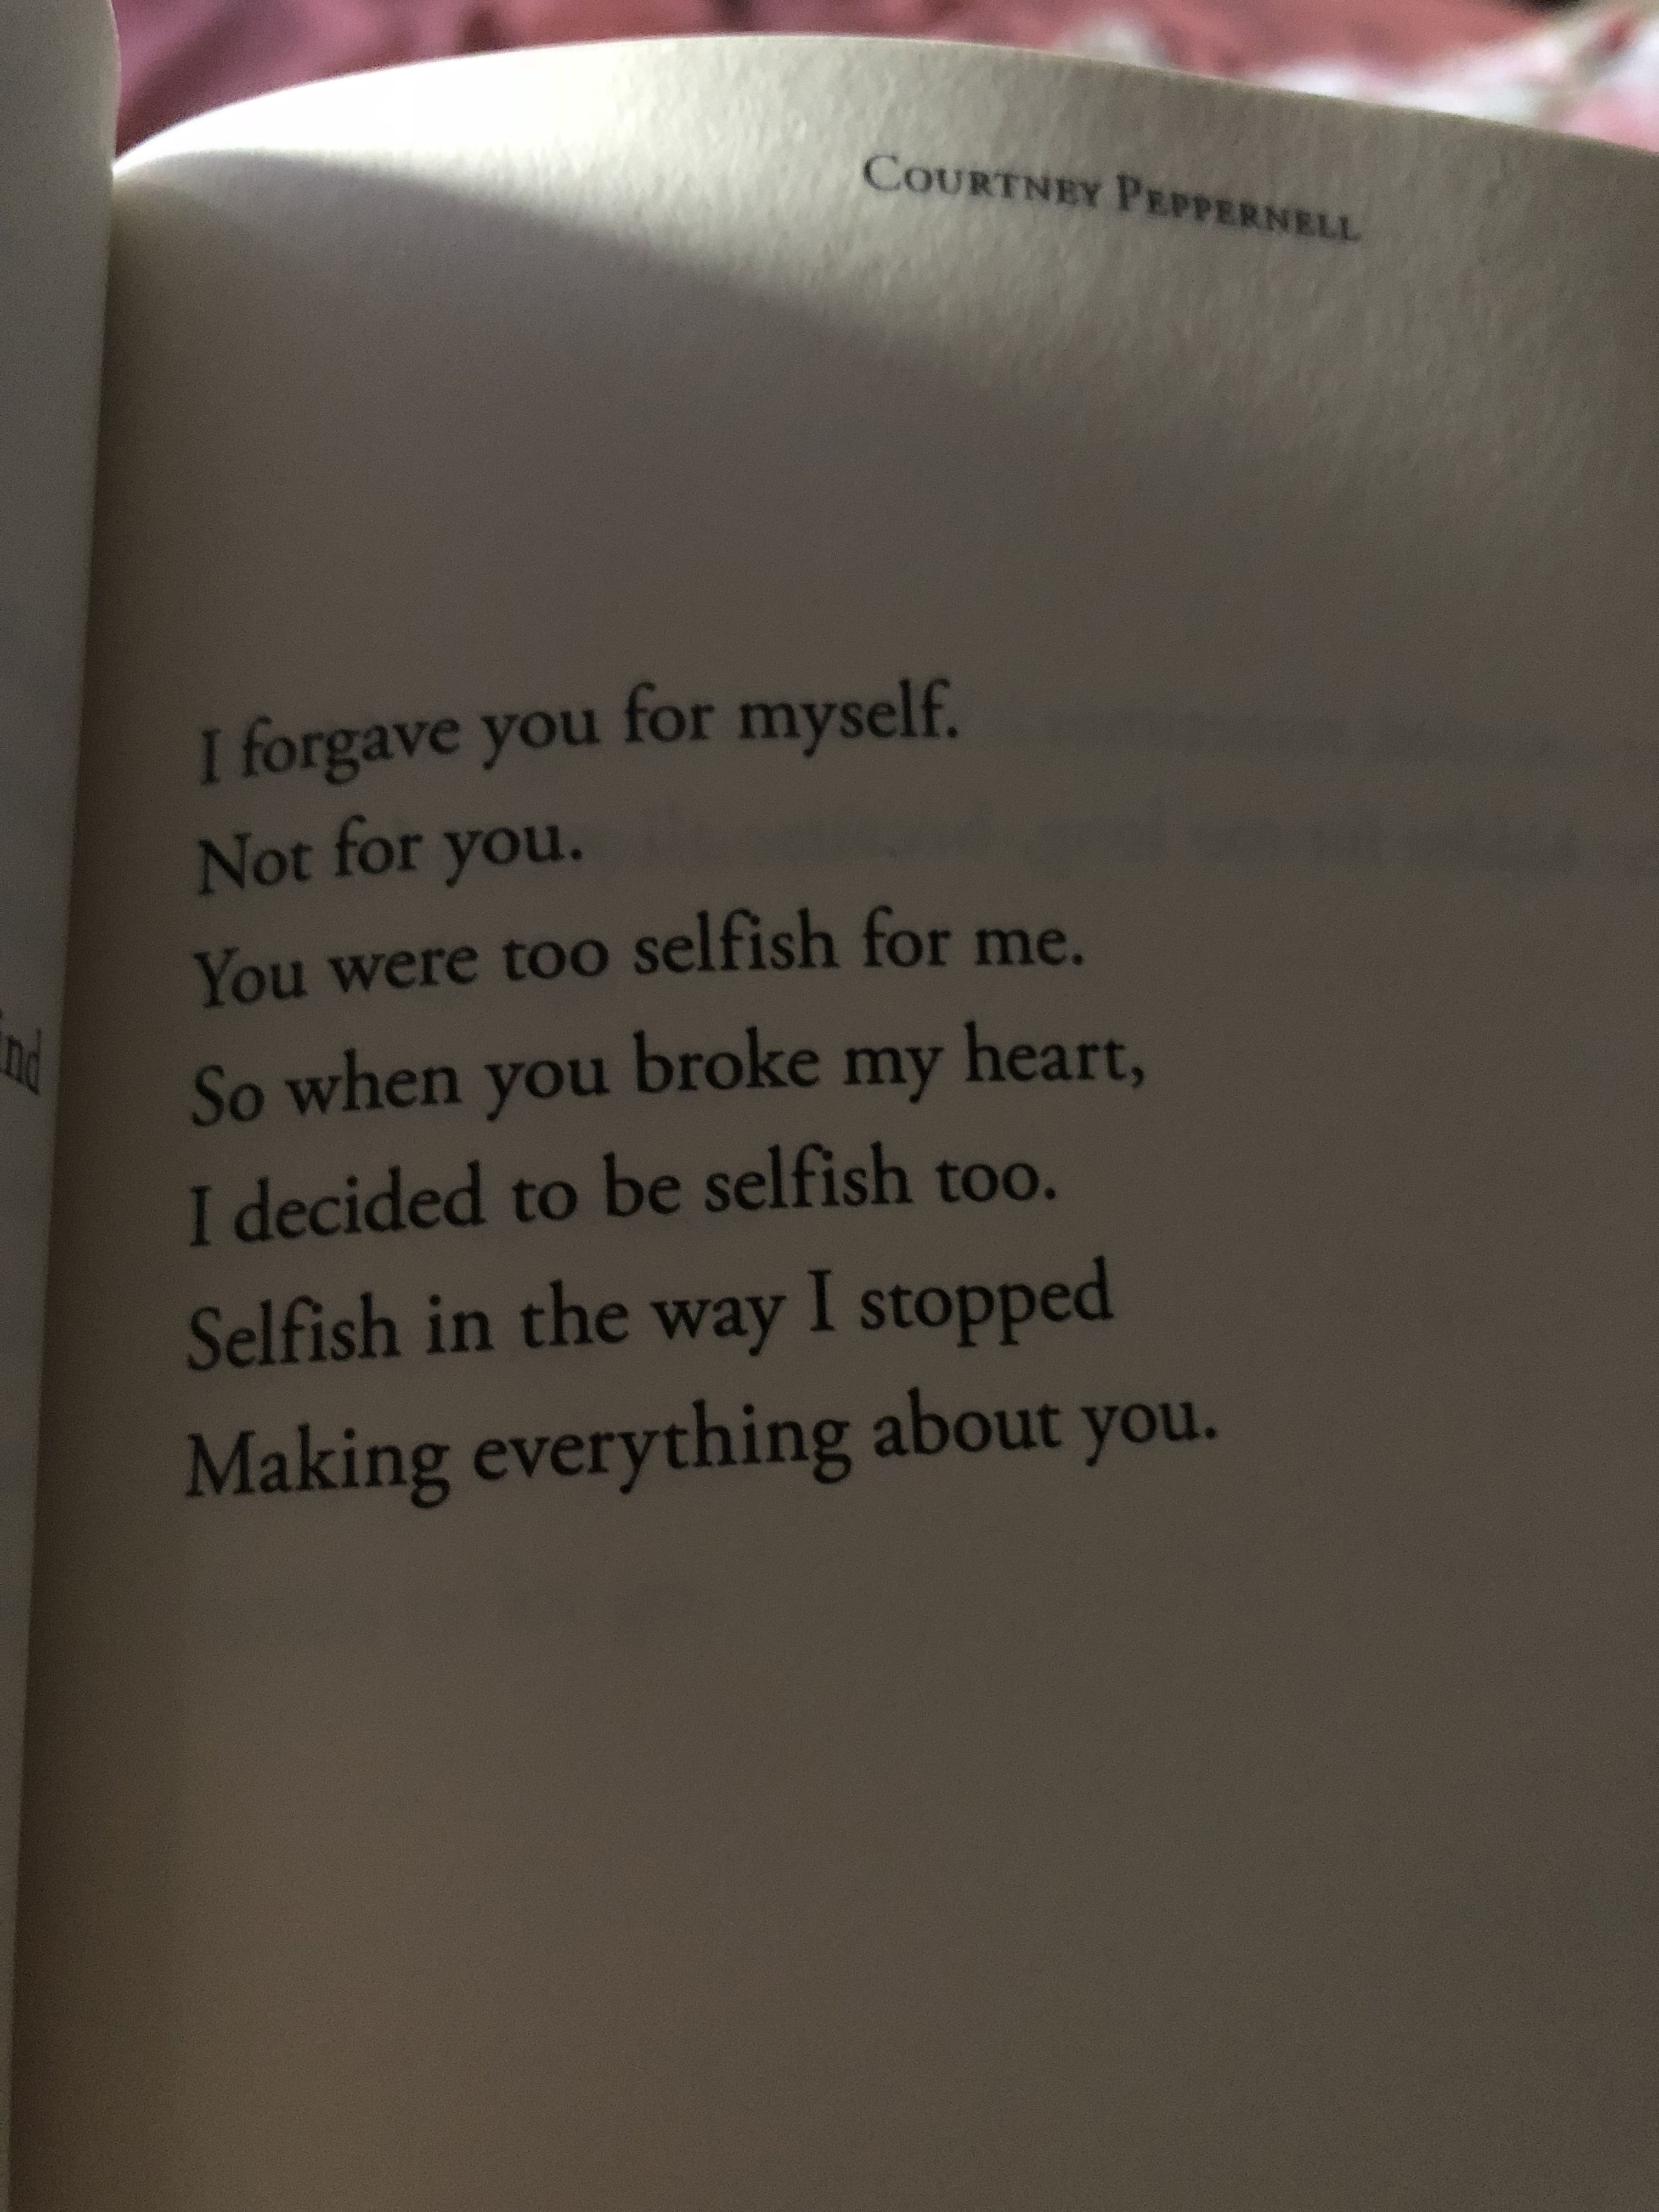 Courtney Peppernell Pillow Thoughts If You Are Heart Broken Pillow Thoughts Words Of Comfort Heart Quotes